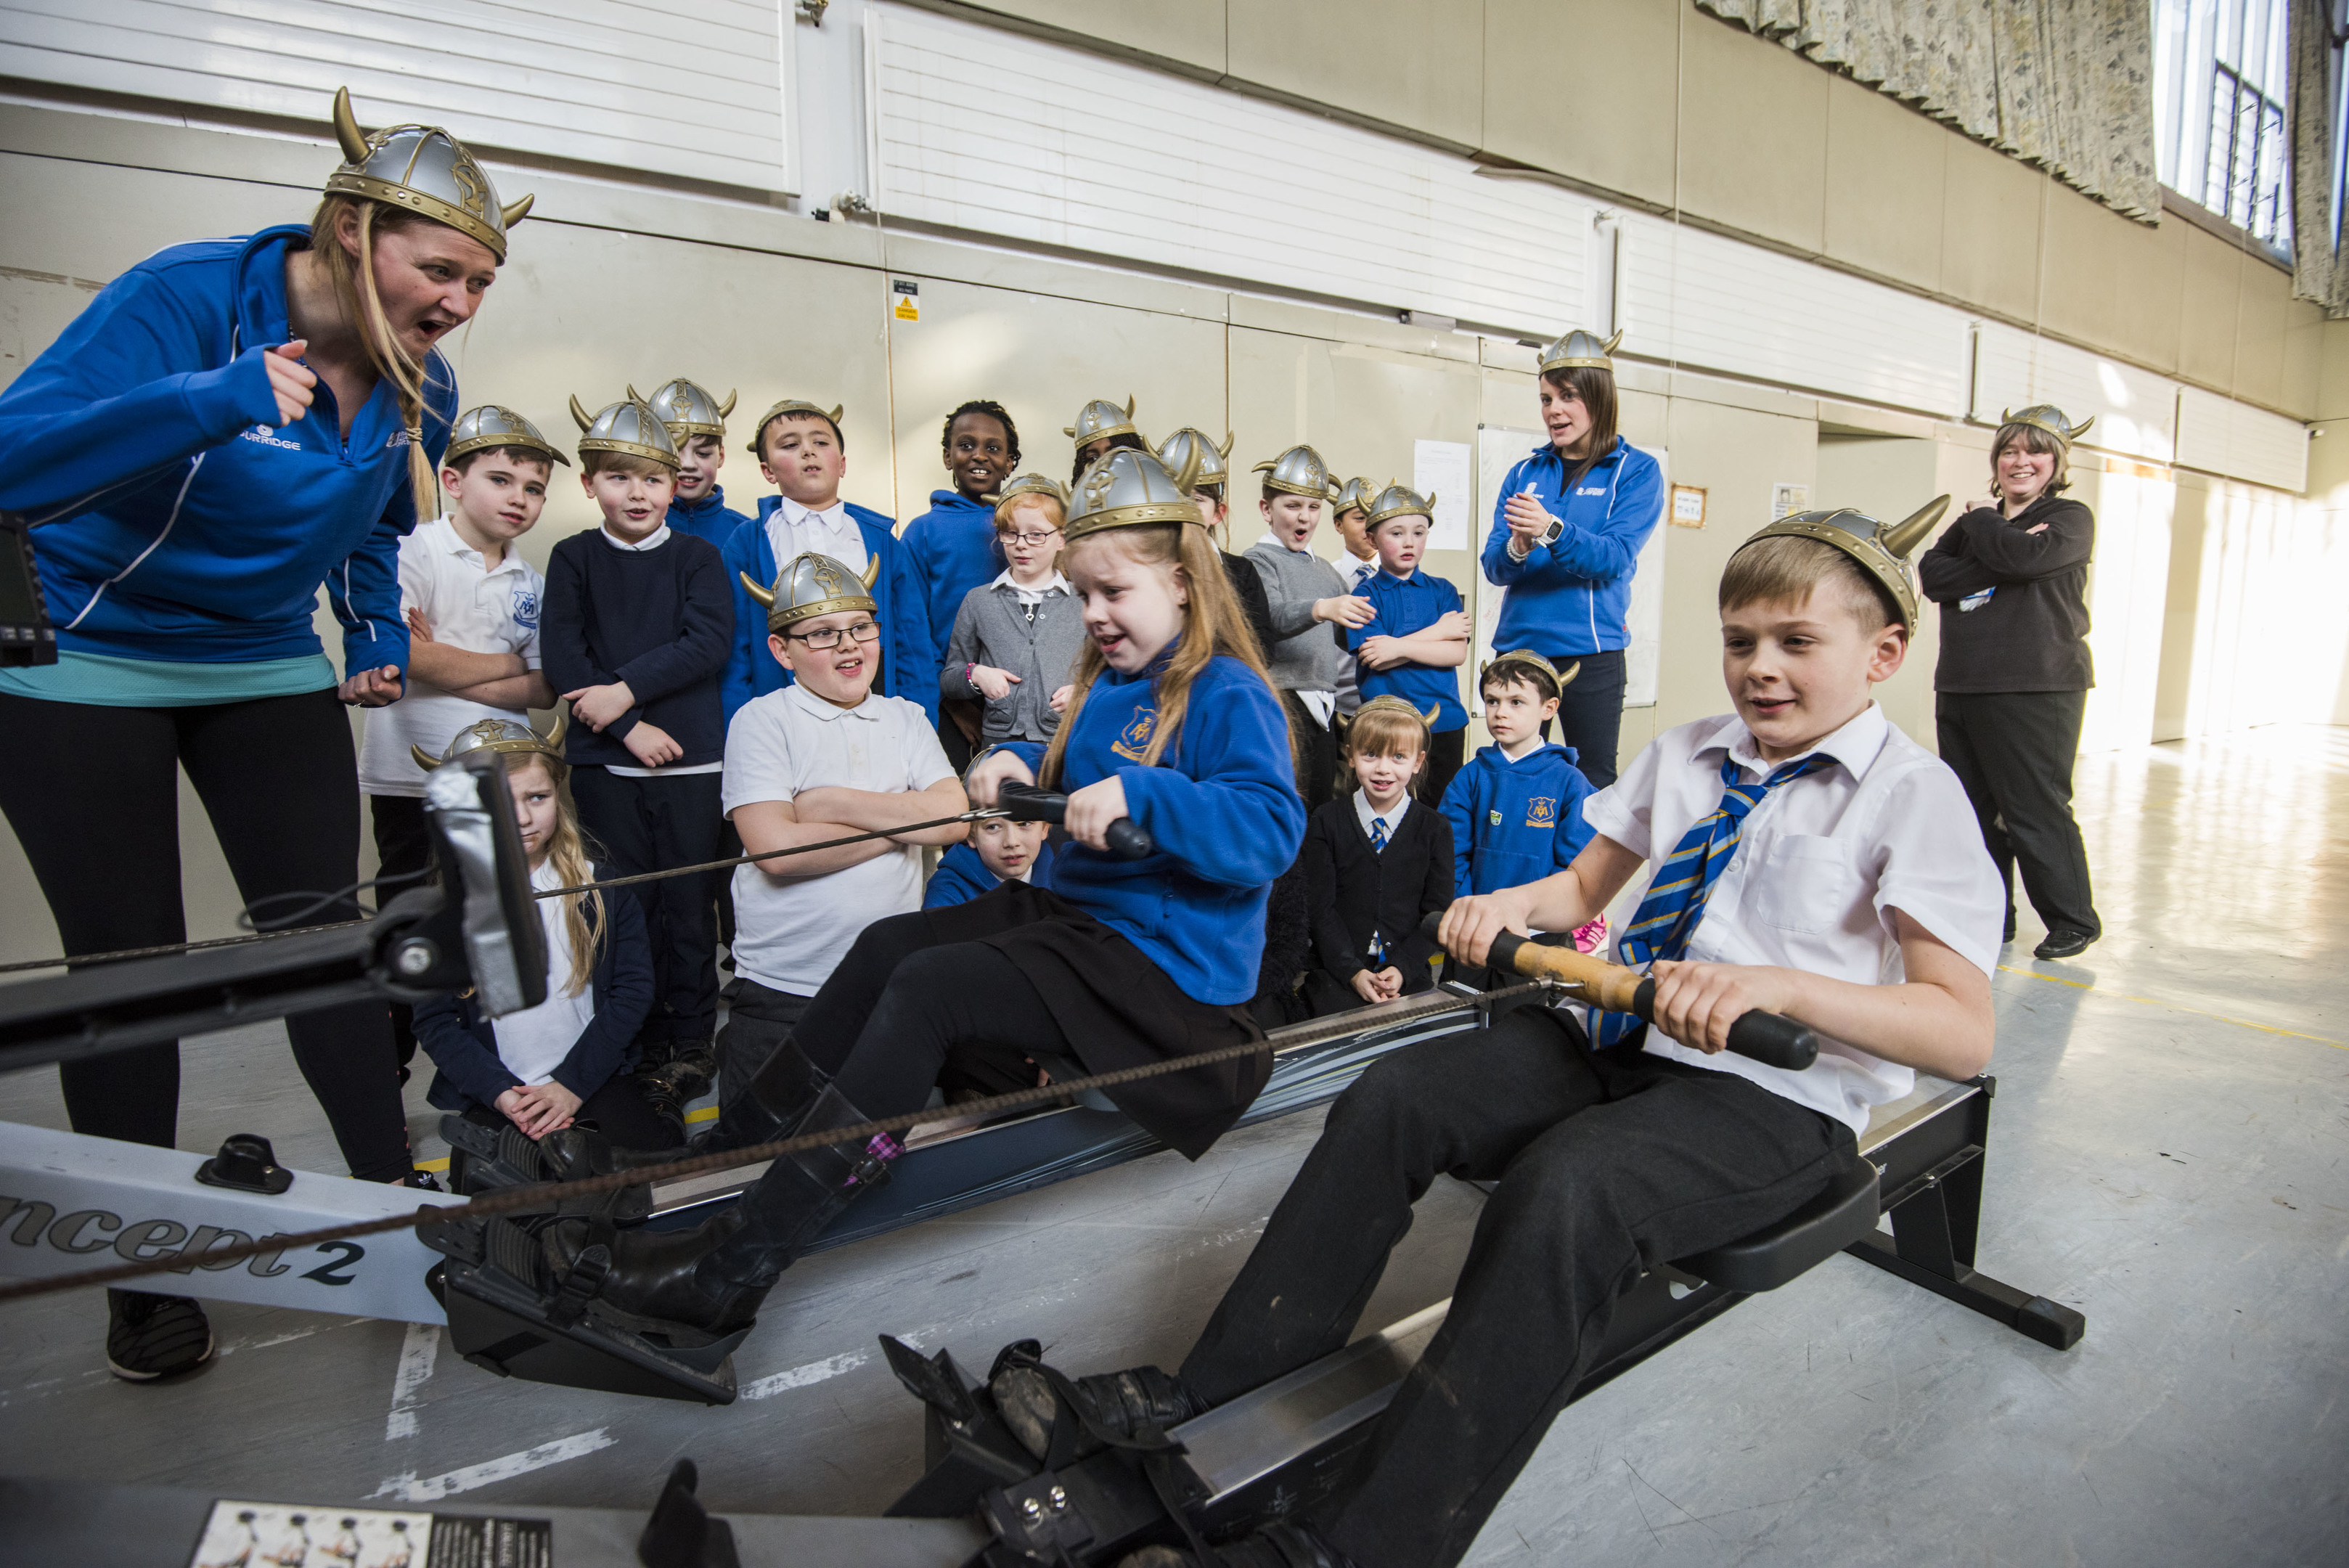 Children from Our Lady's Primary school being taught about Viking history while exercising on a rowing machine.